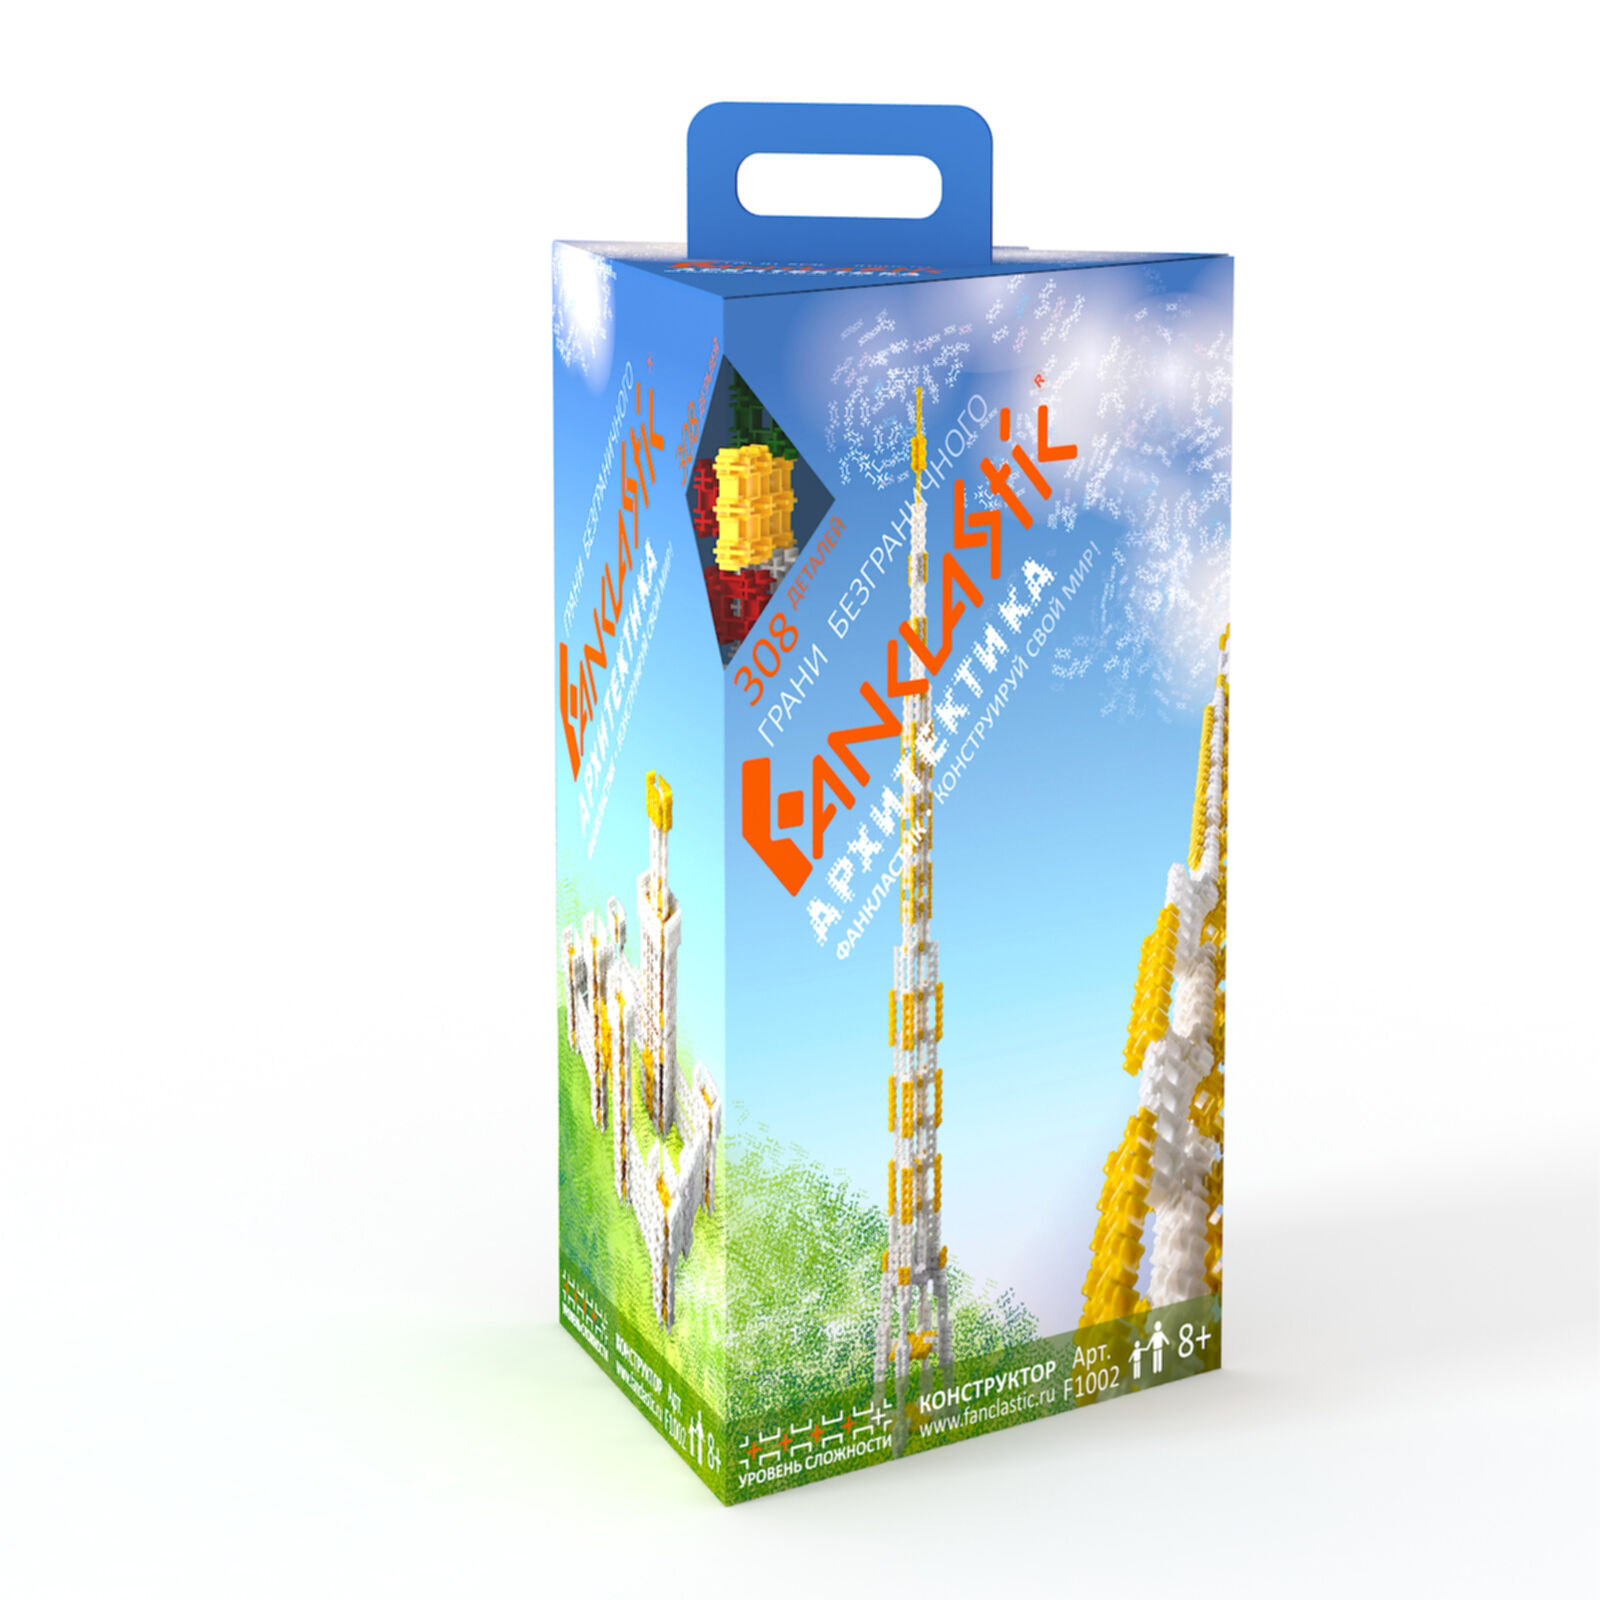 Fanclastic,Arcitectics Building Set,New Educational Construction Toy From Russia